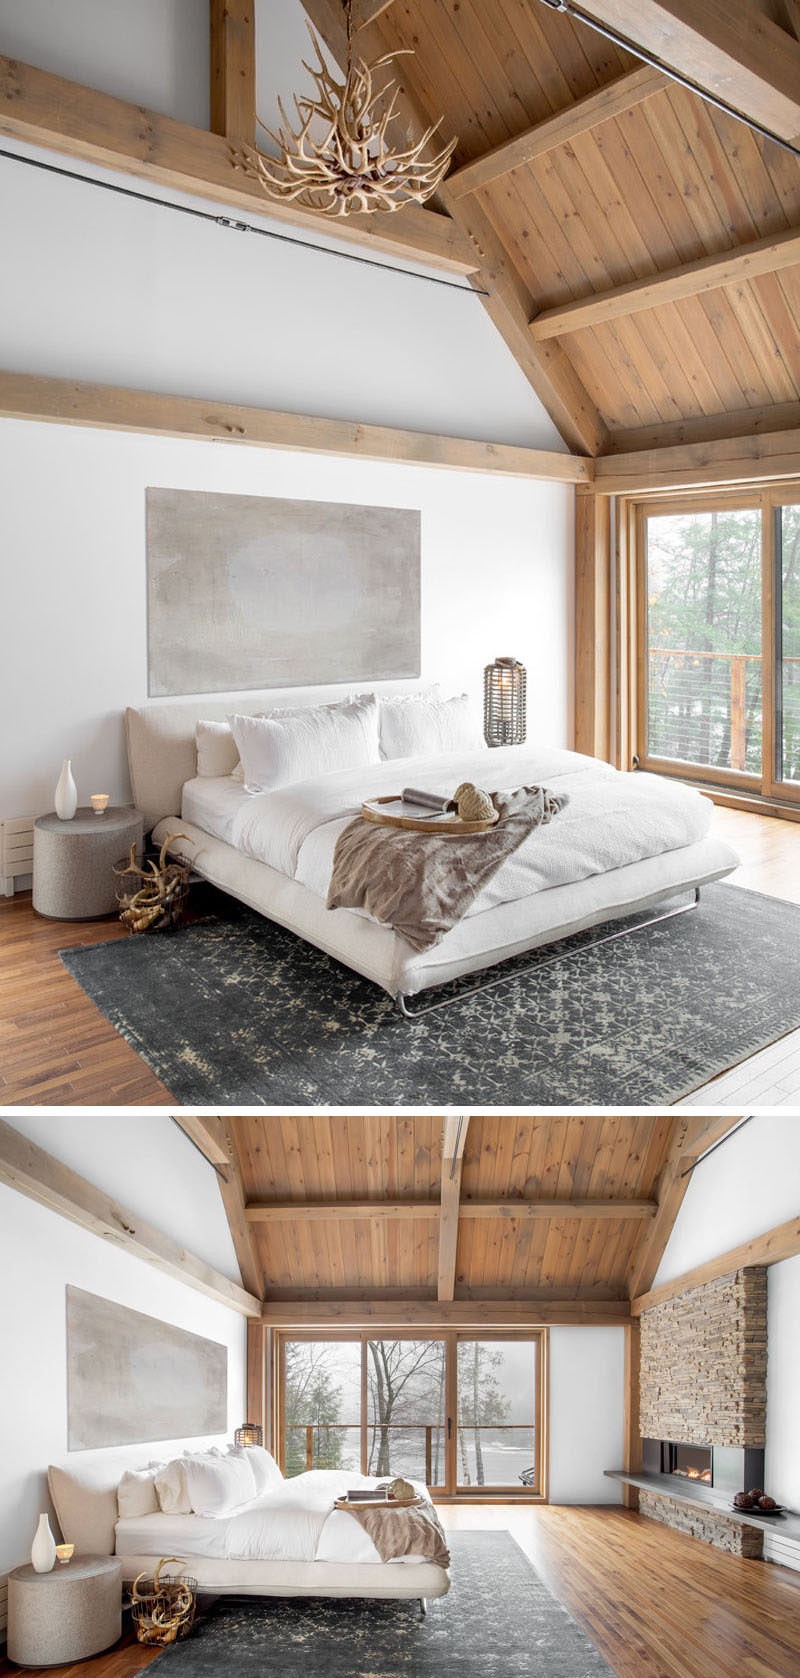 Bedroom Design Ideas This Cozy Barn Inspired Bedroom With Ensuite Has A Neutral Color Palette